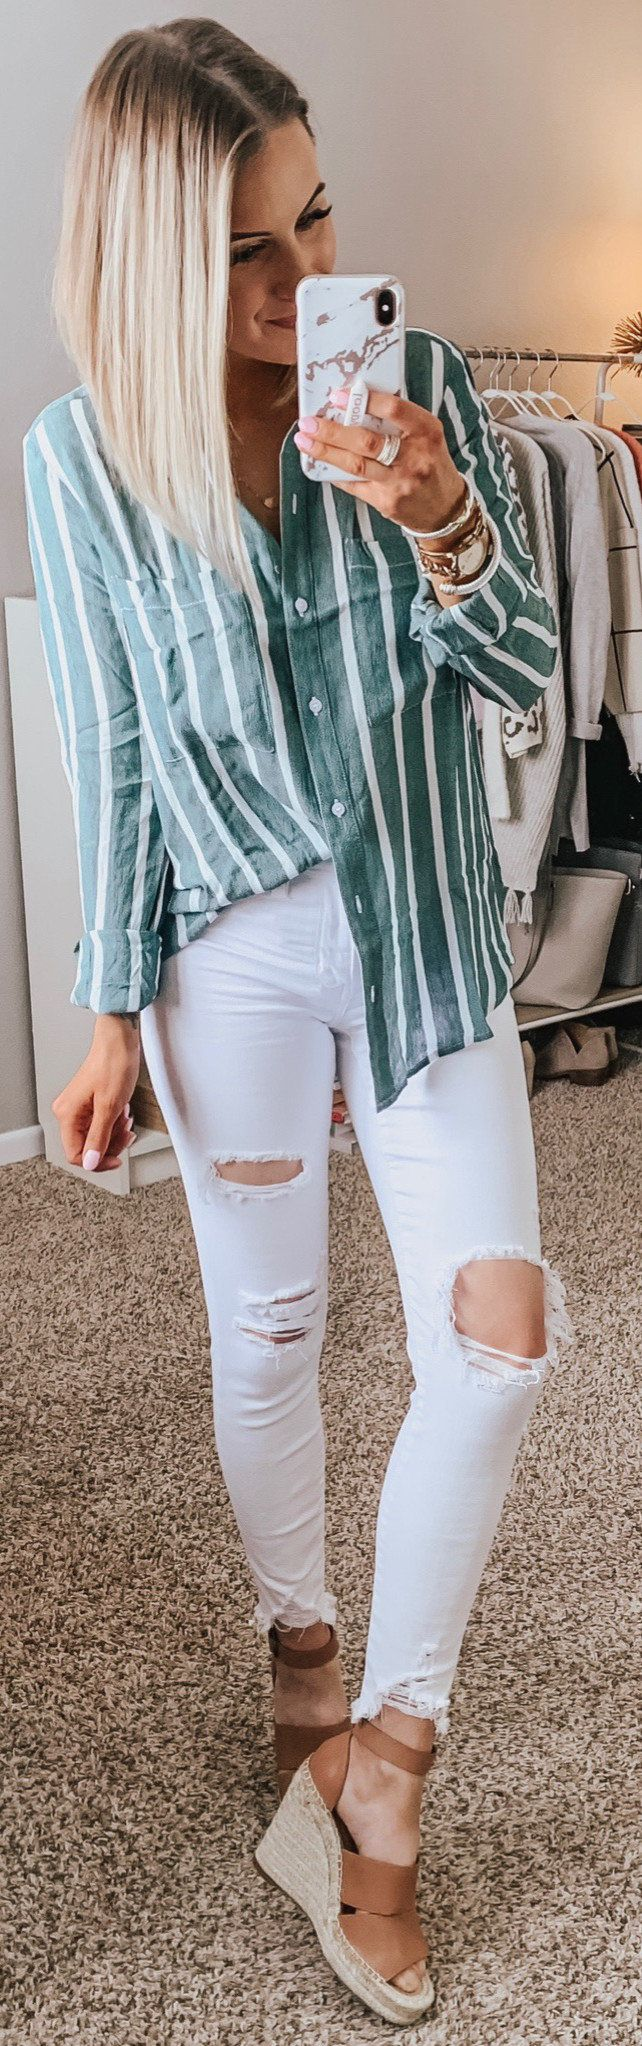 green and white stripe dress shirt #spring #outfits